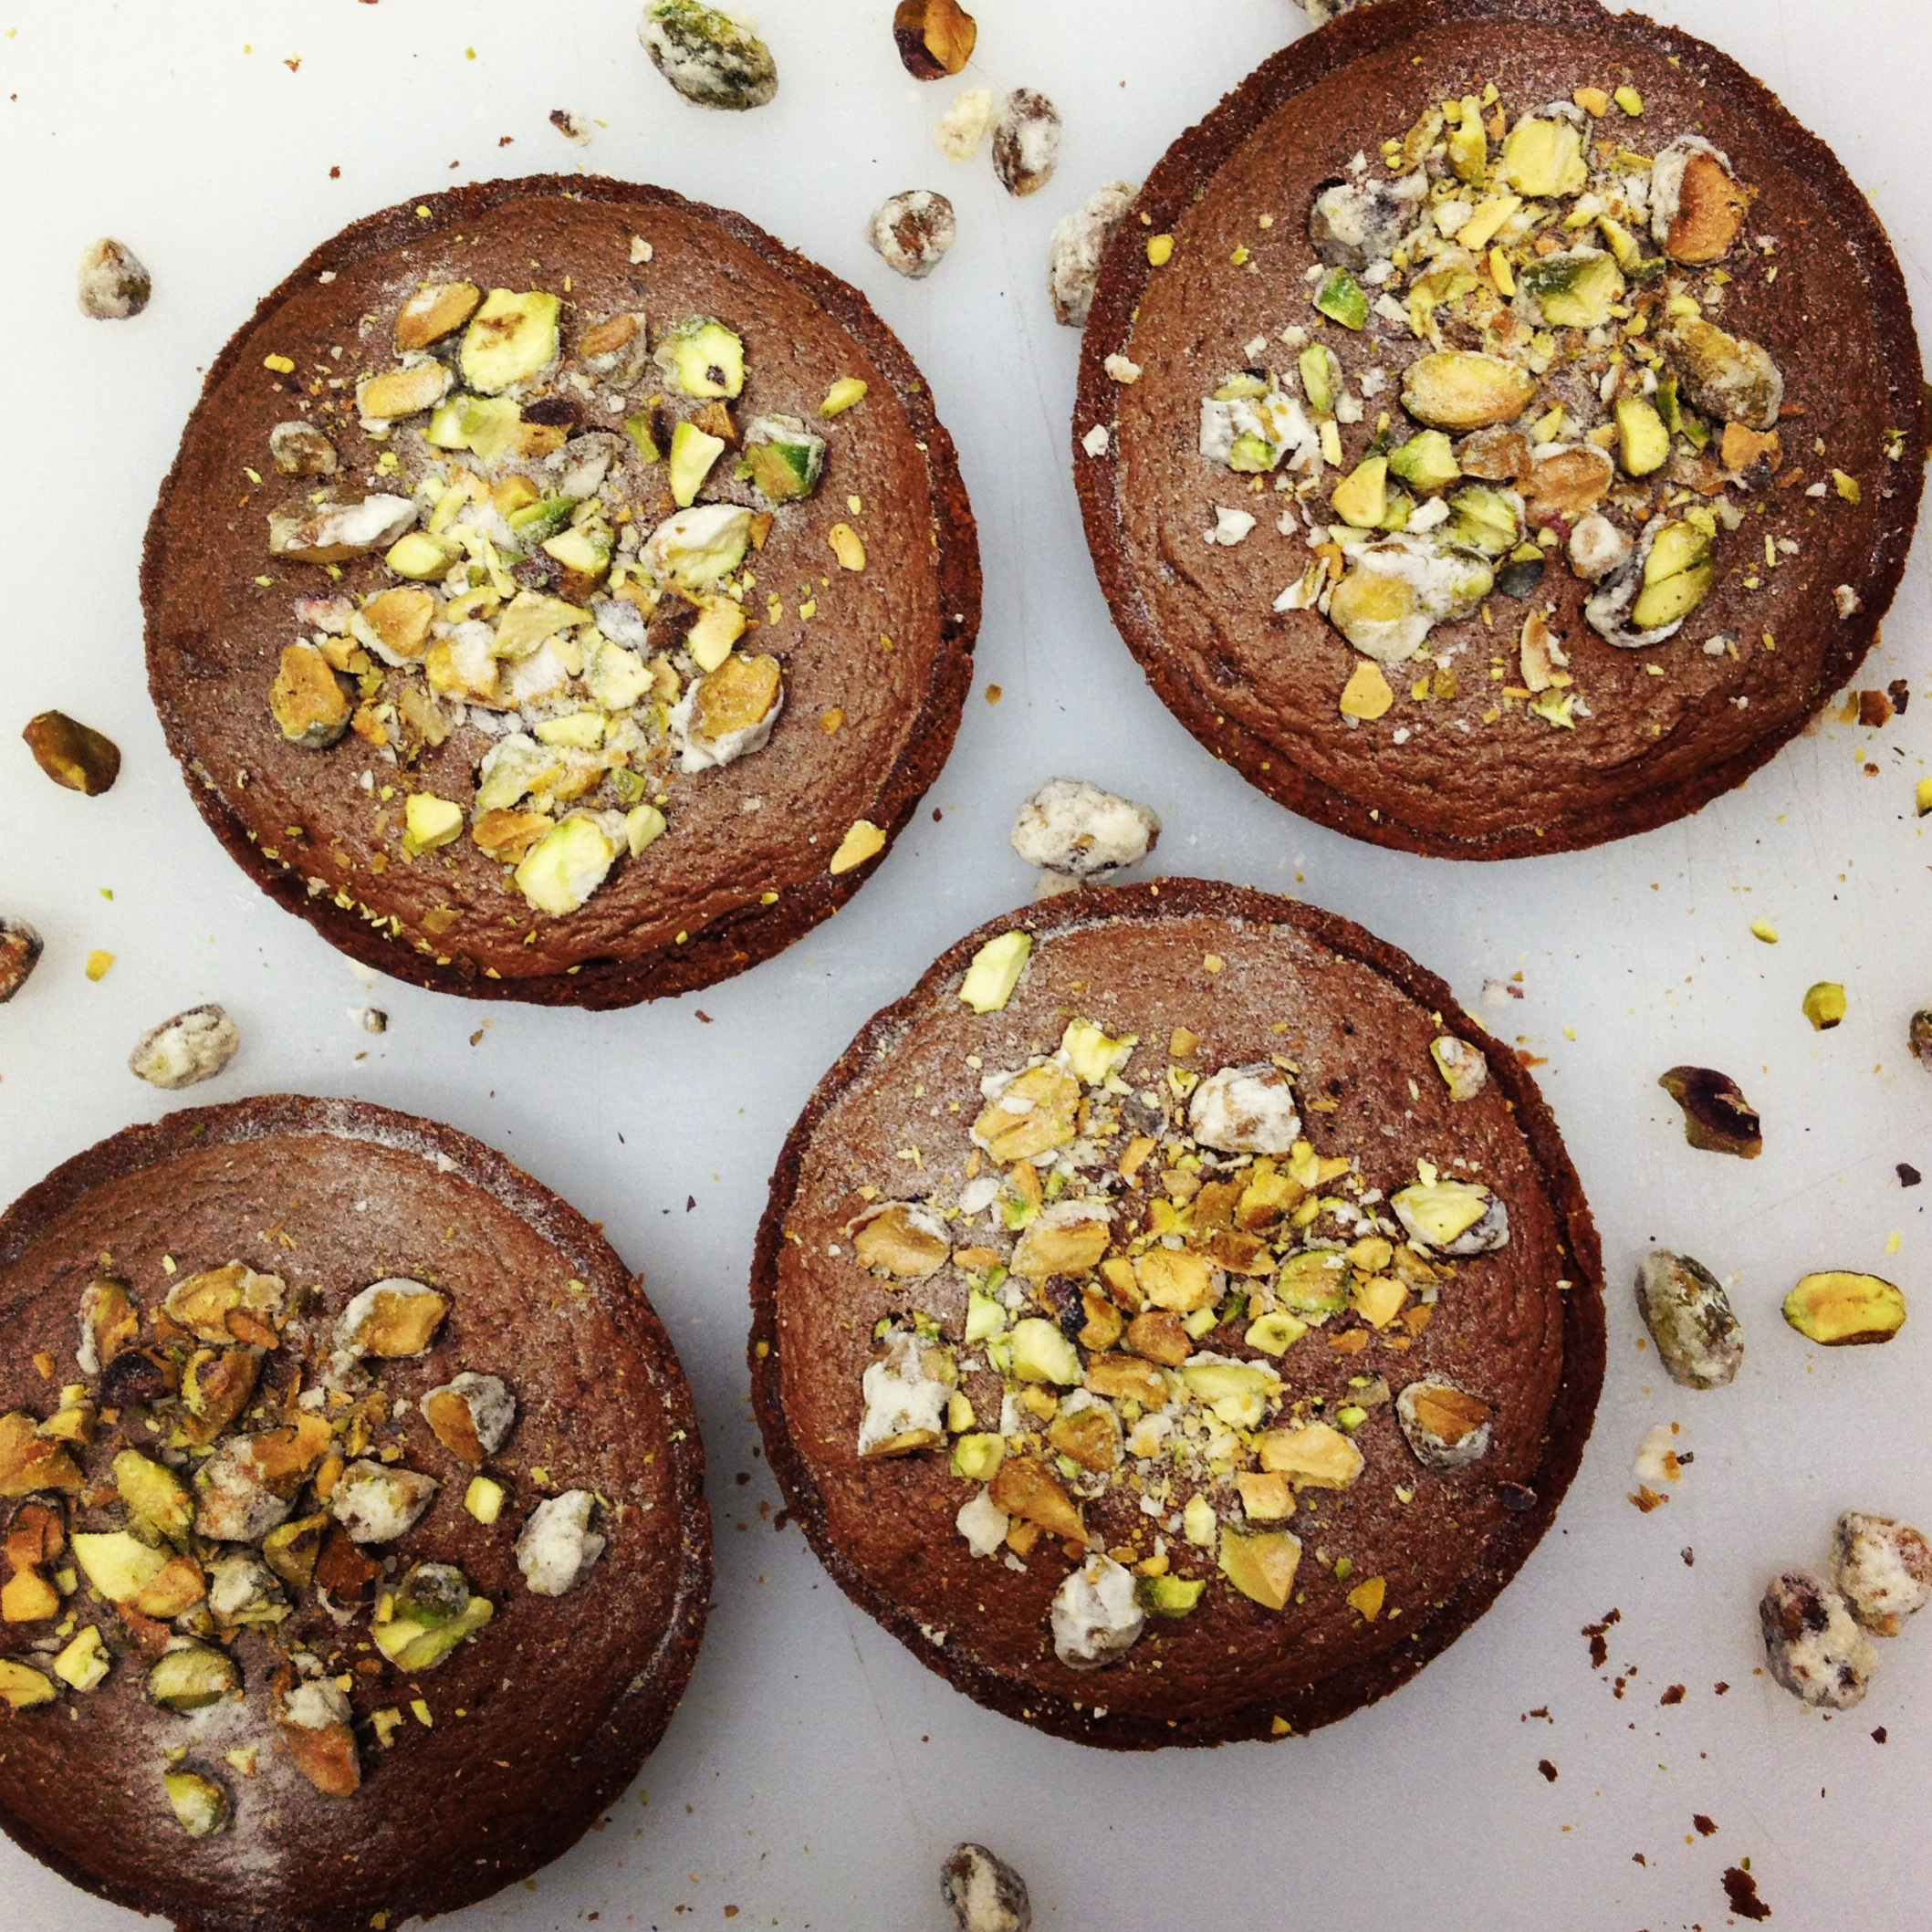 chocolate-mousse-and-pistachio-tarts